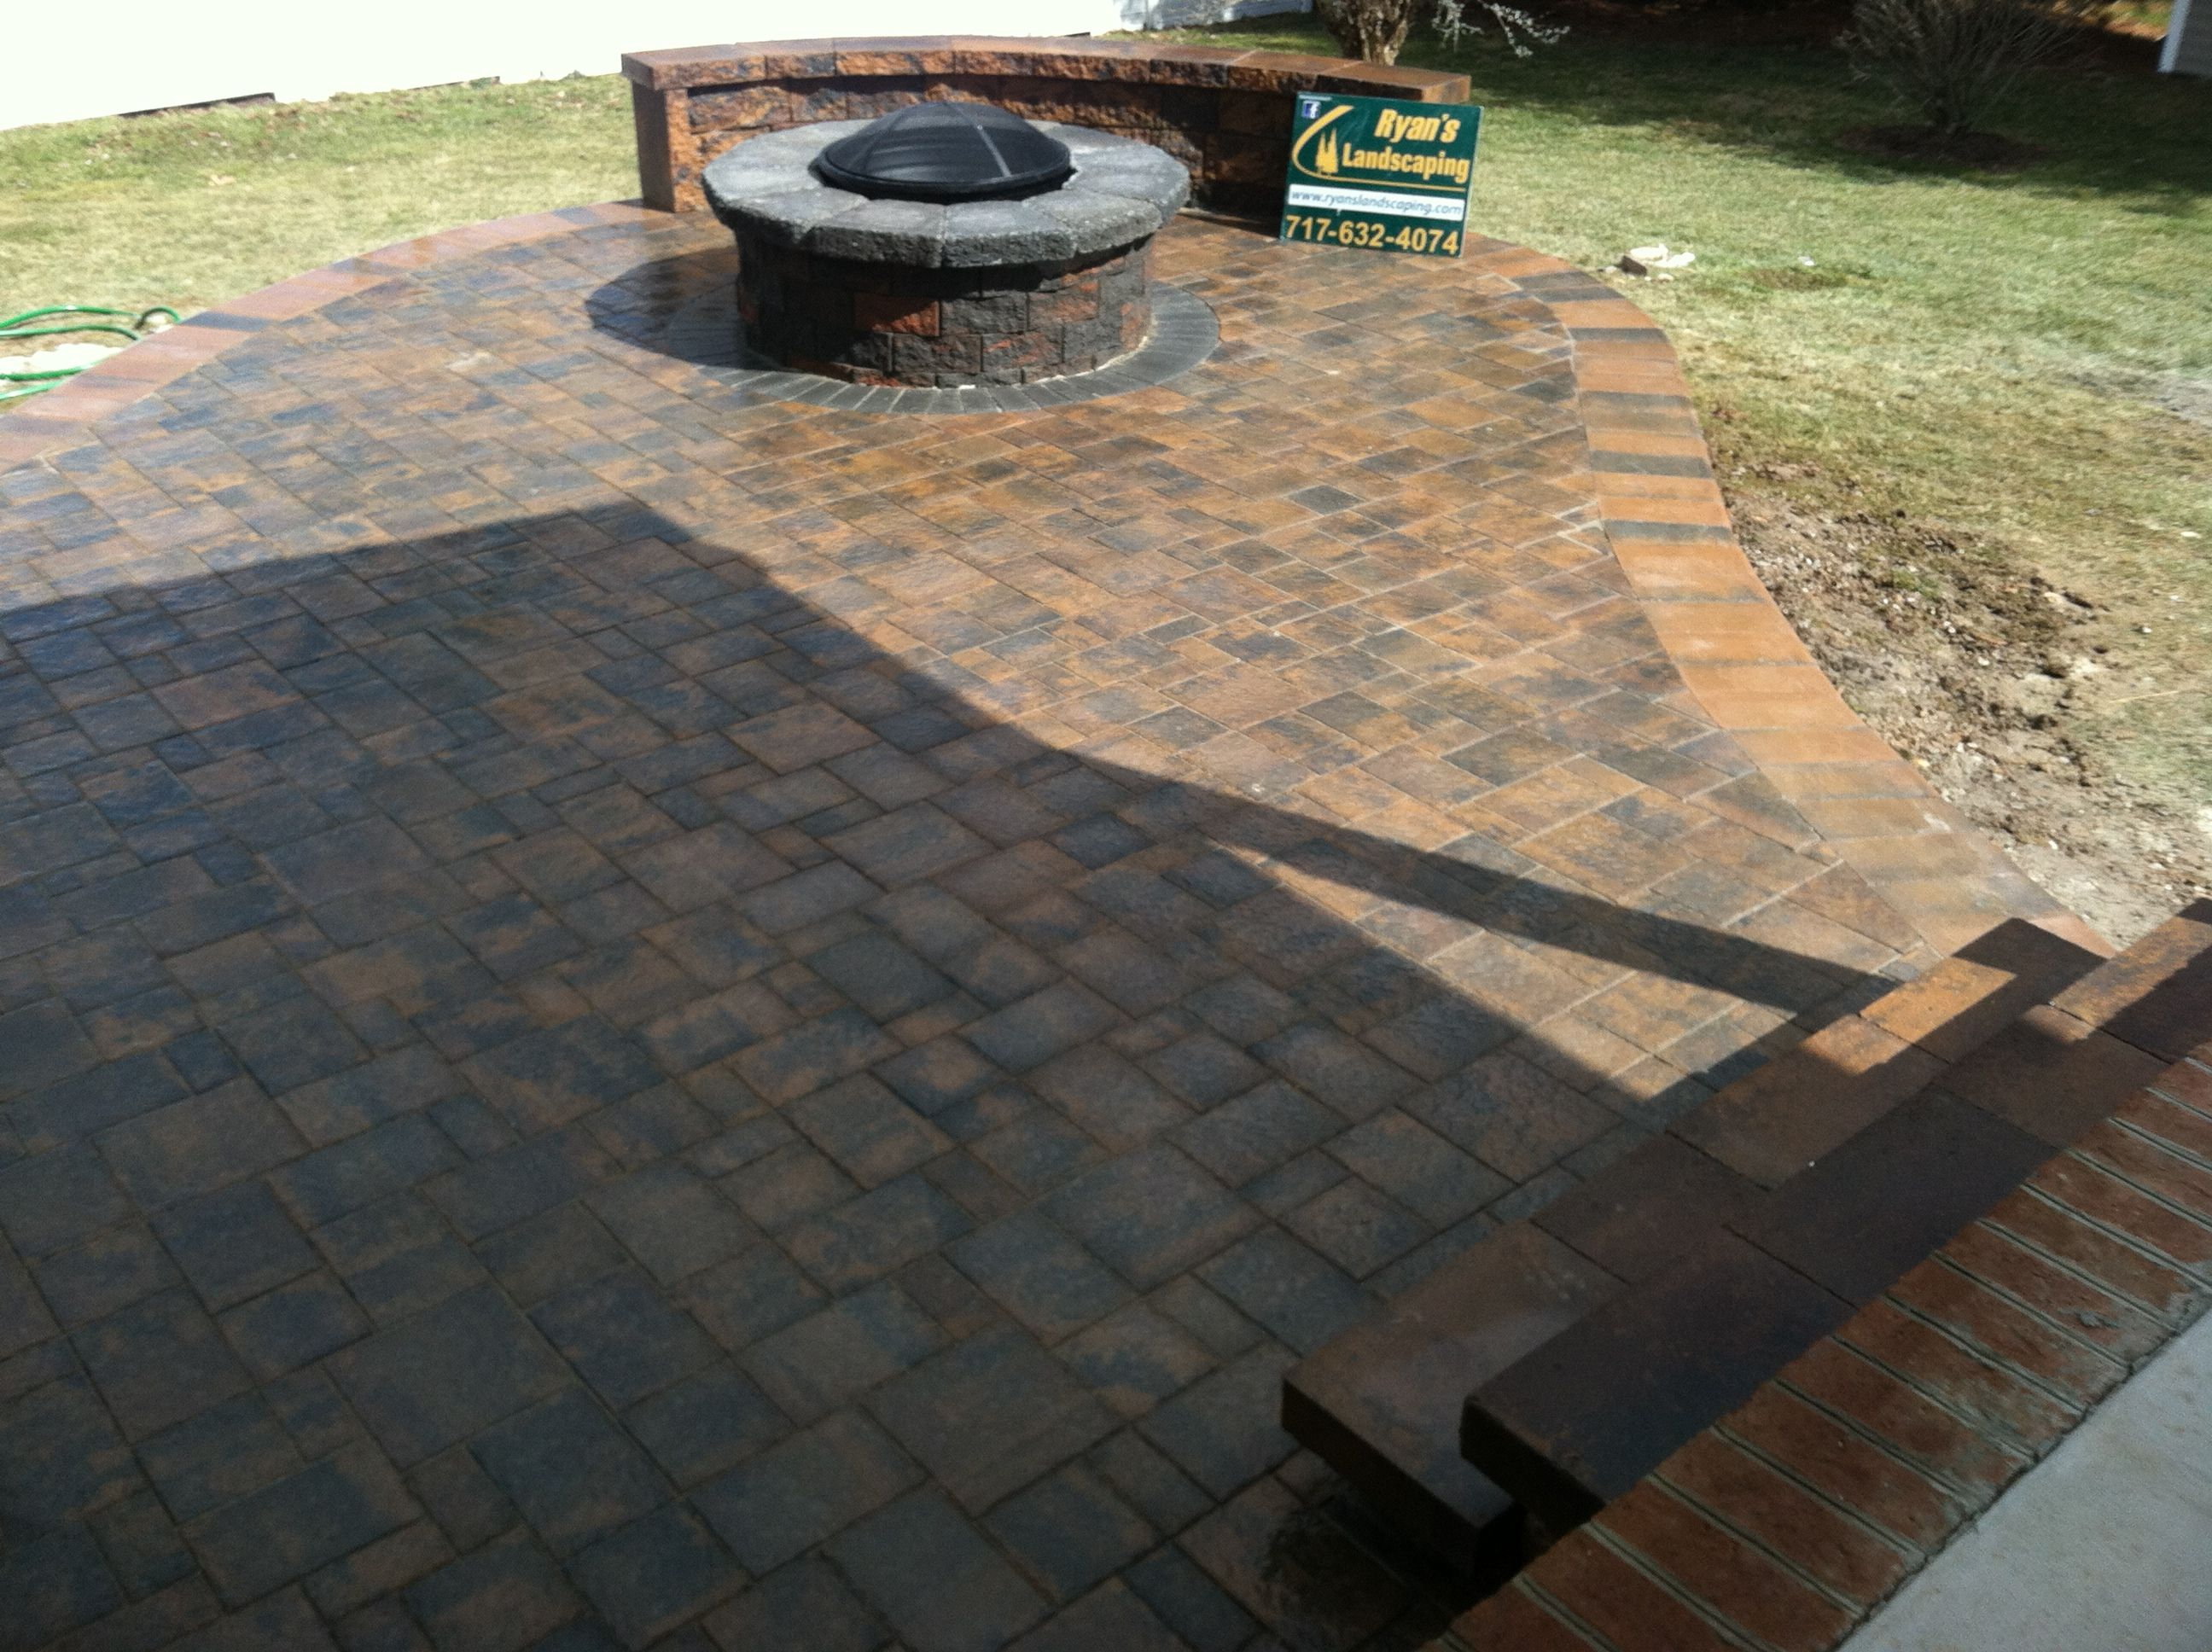 Hanover Paver Patio Installation Featuring A Fire Pit With A Brick Ring Of  Charcoal Colored Brick